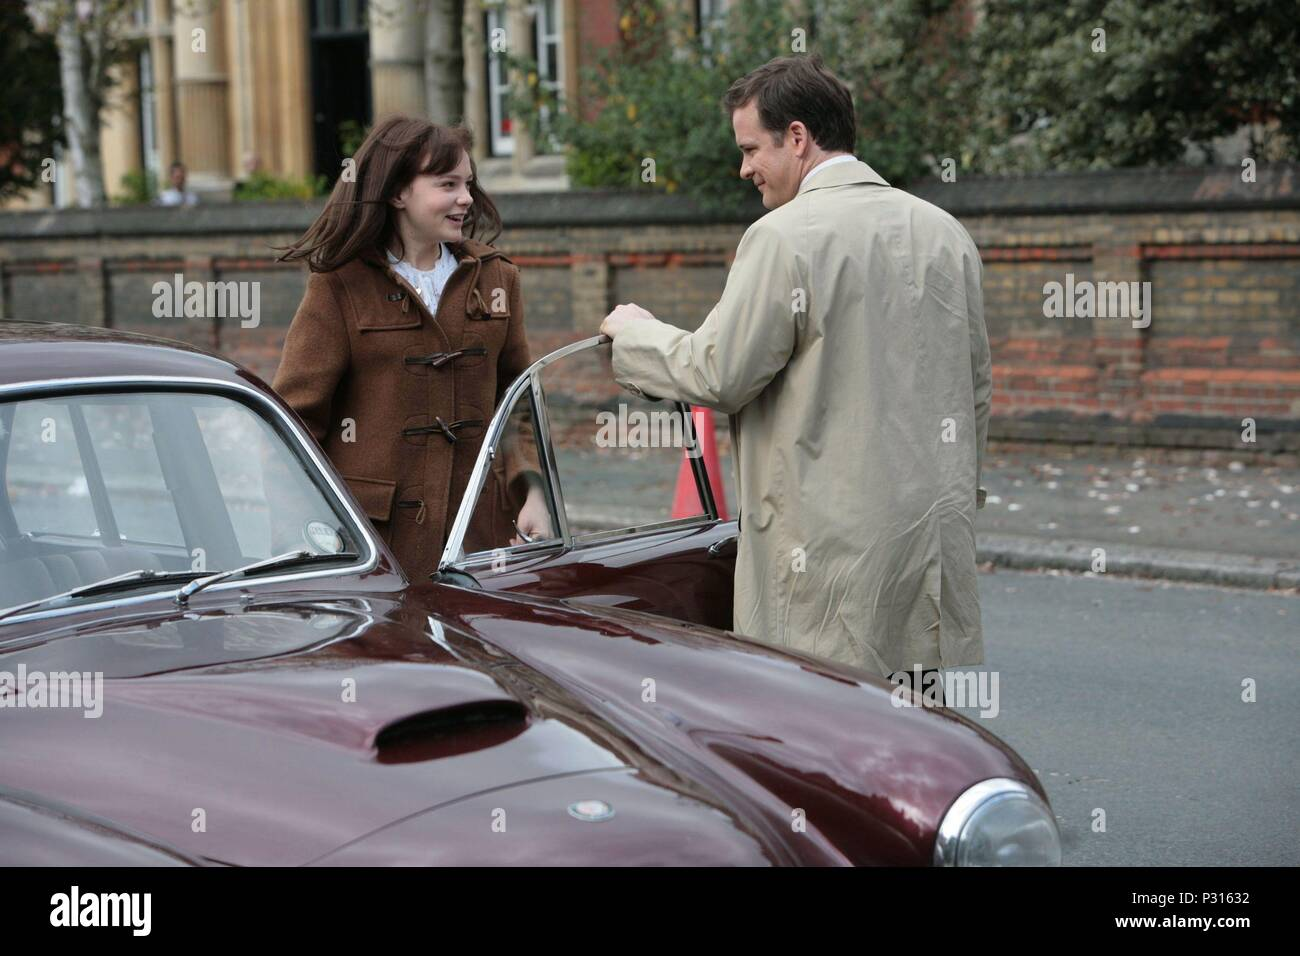 Original Film Title: AN EDUCATION.  English Title: AN EDUCATION.  Film Director: LONE SCHERFIG.  Year: 2009.  Stars: PETER SARSGAARD; CAREY MULLIGAN. Credit: BBC FILMS / Album - Stock Image